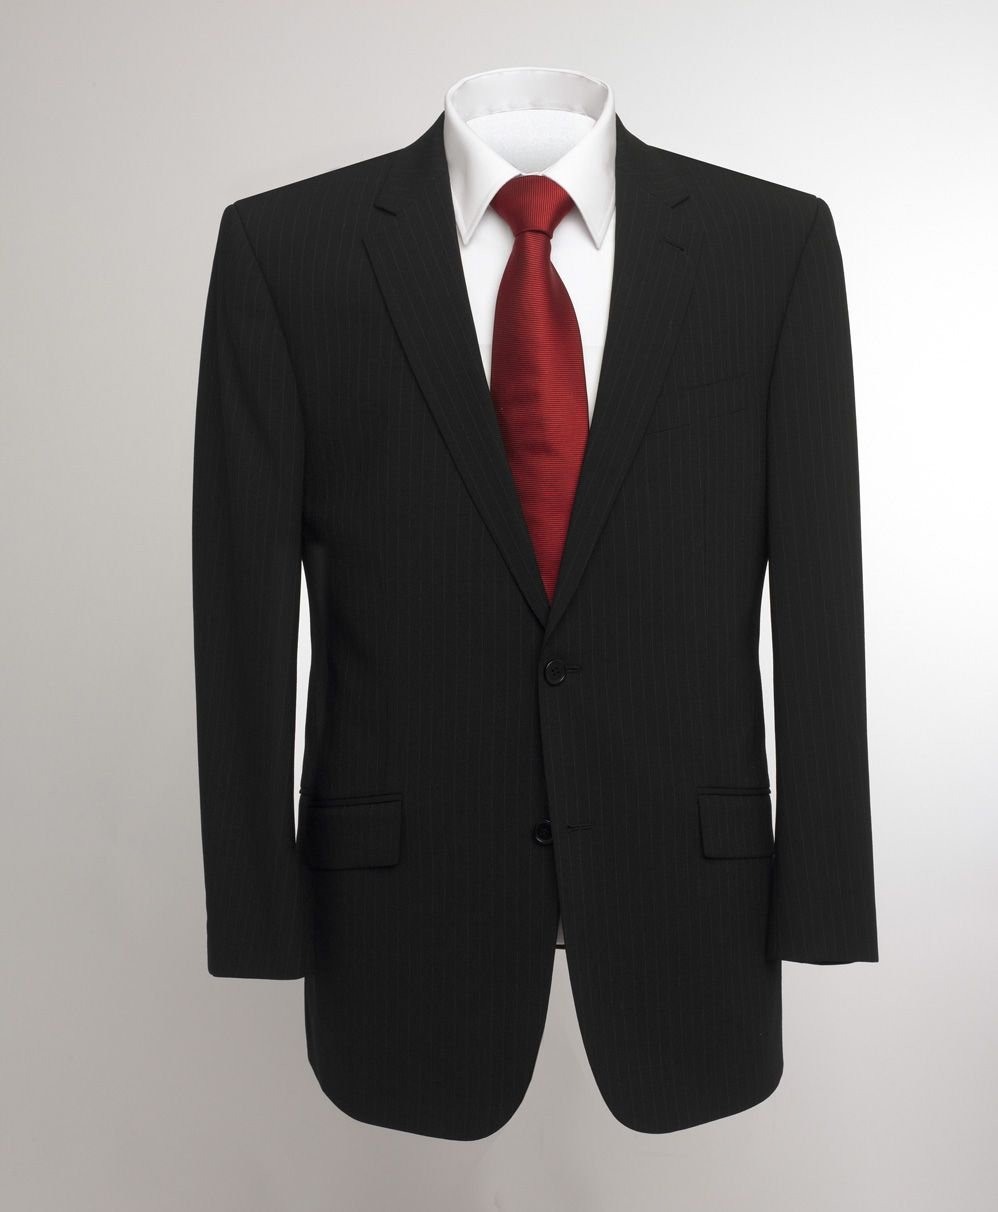 Oslo suit jacket